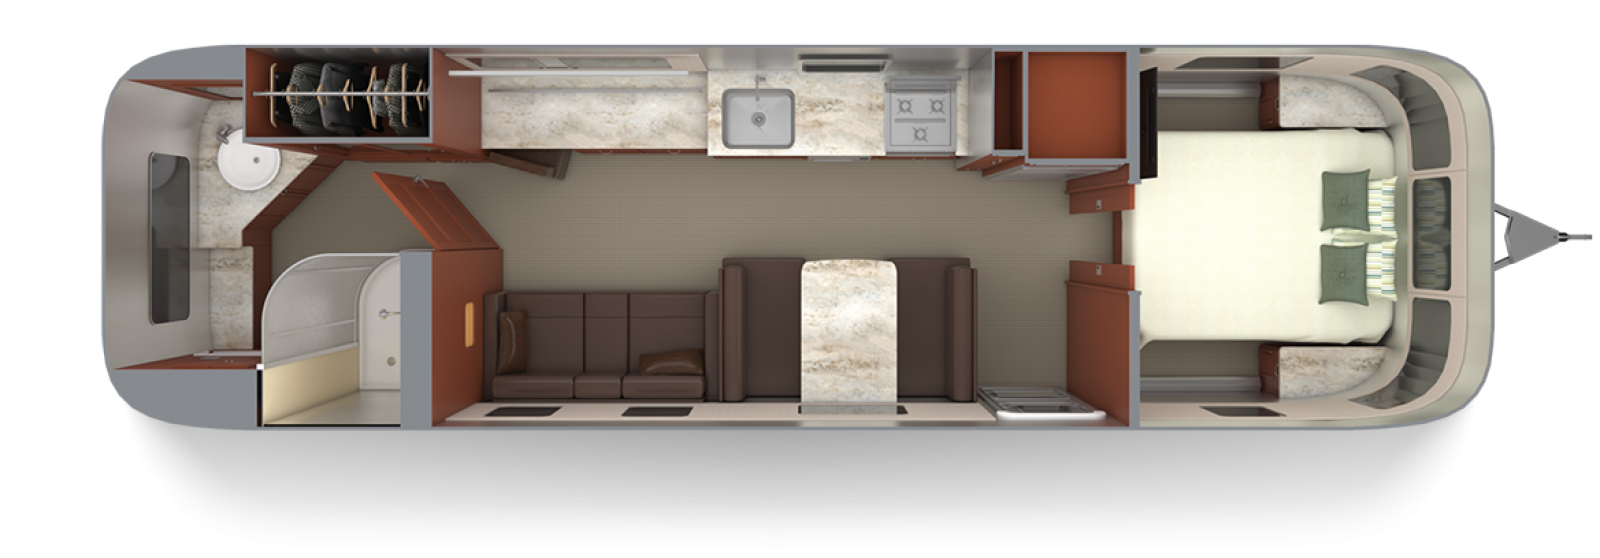 Airstream-Classic-33FB-Mocha-Cherry-with-Chestnut-Floor-Plan